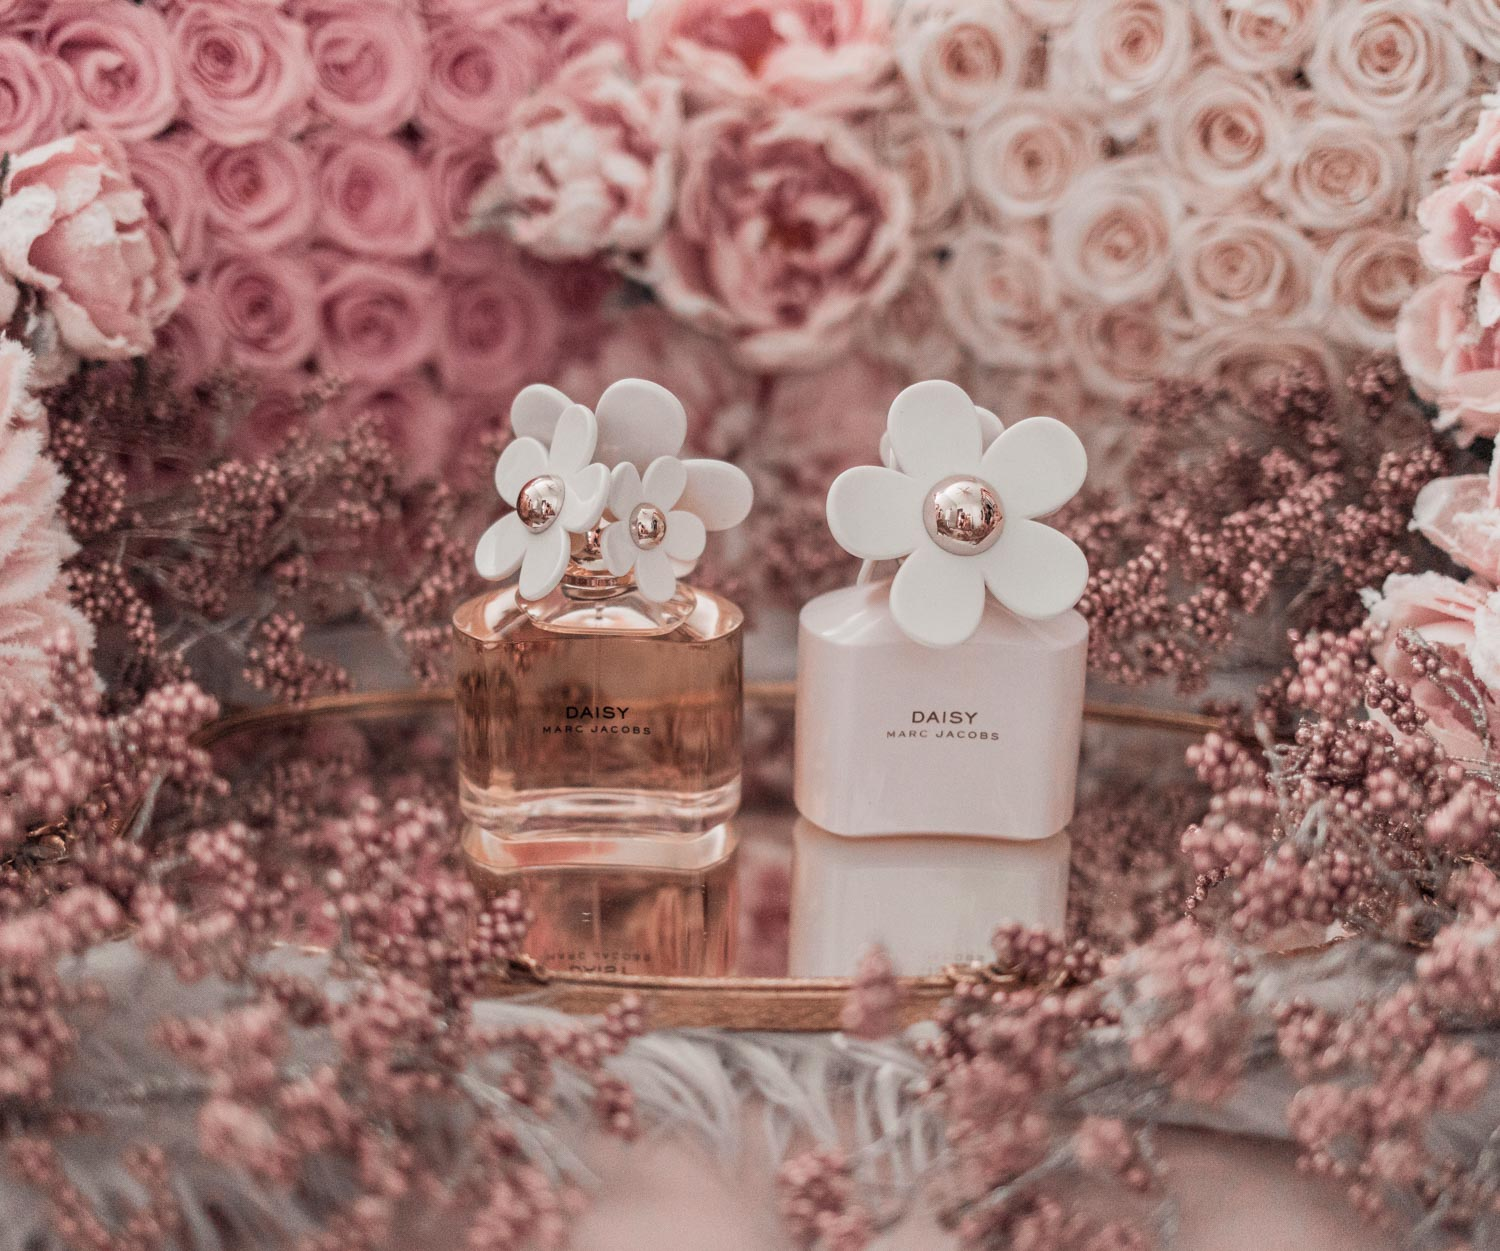 Feminine fashion blogger Elizabeth Hugen of Lizzie in Lace shares the best feminine perfumes and her girly fragrance collection including Marc Jacobs Daisy